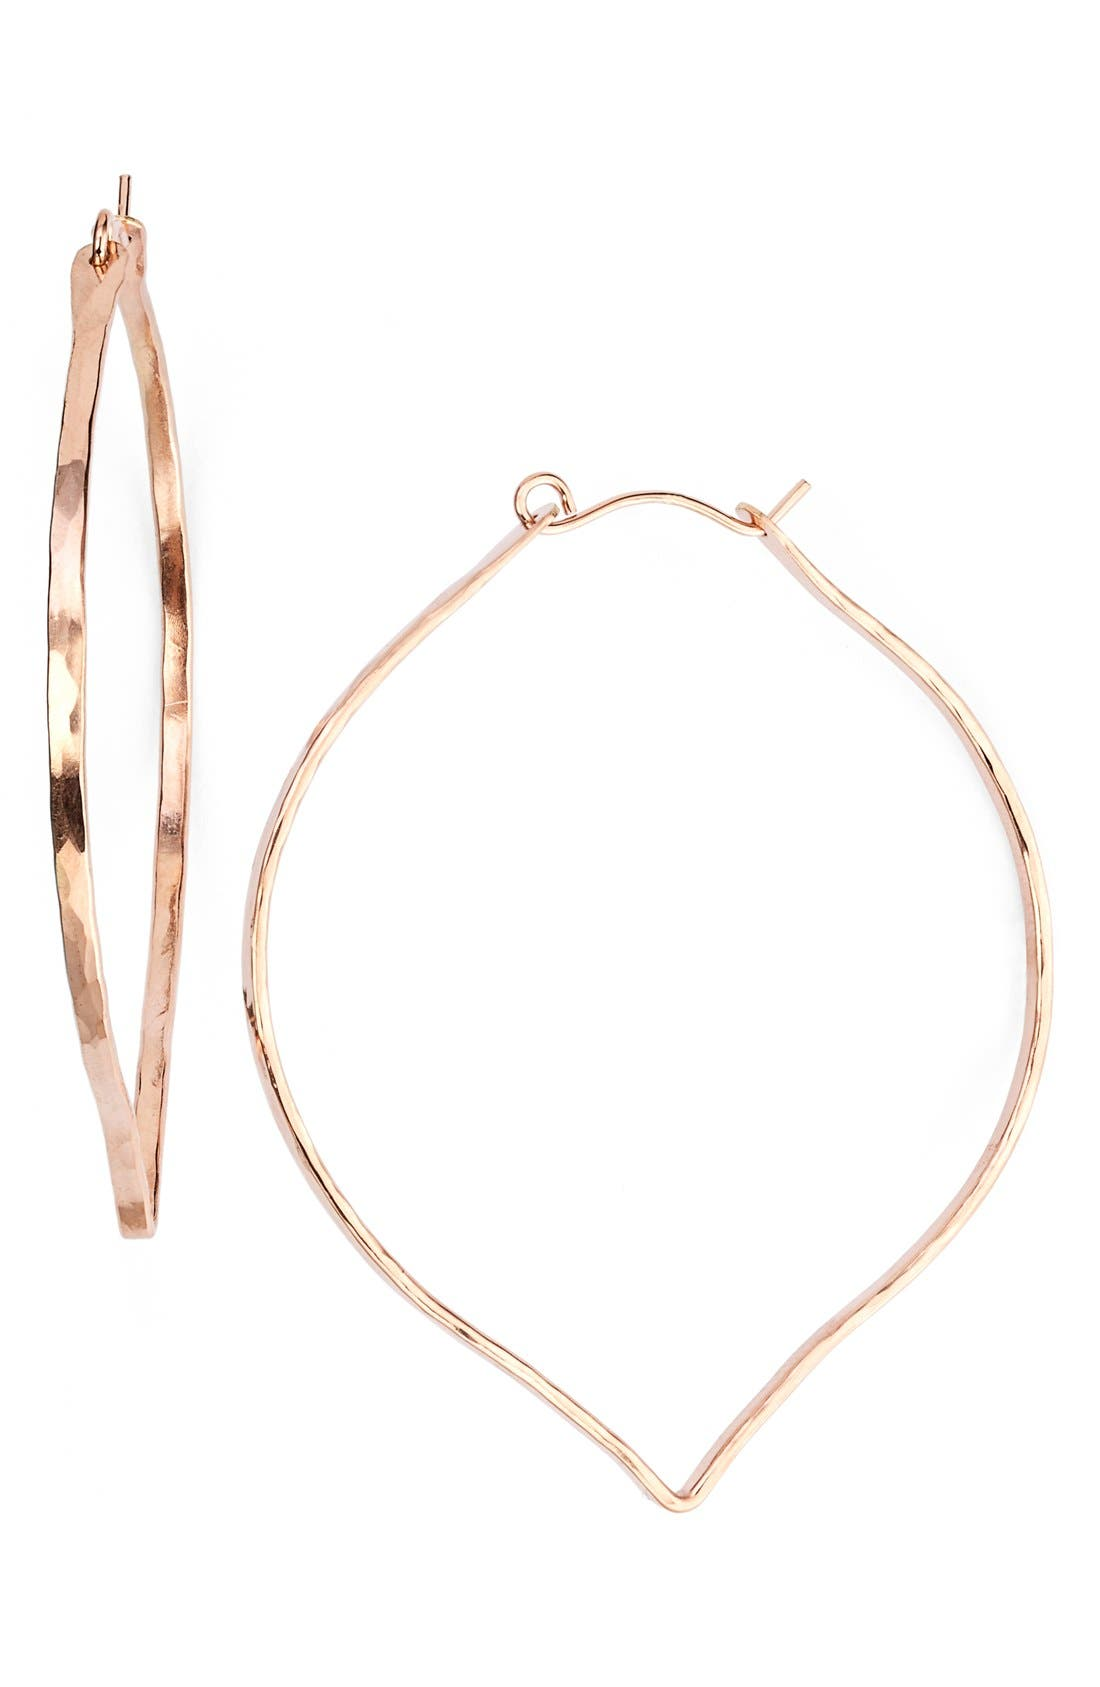 Ija 'Large' 14k-Rose Gold Fill Lotus Hoop Earrings,                             Main thumbnail 1, color,                             220